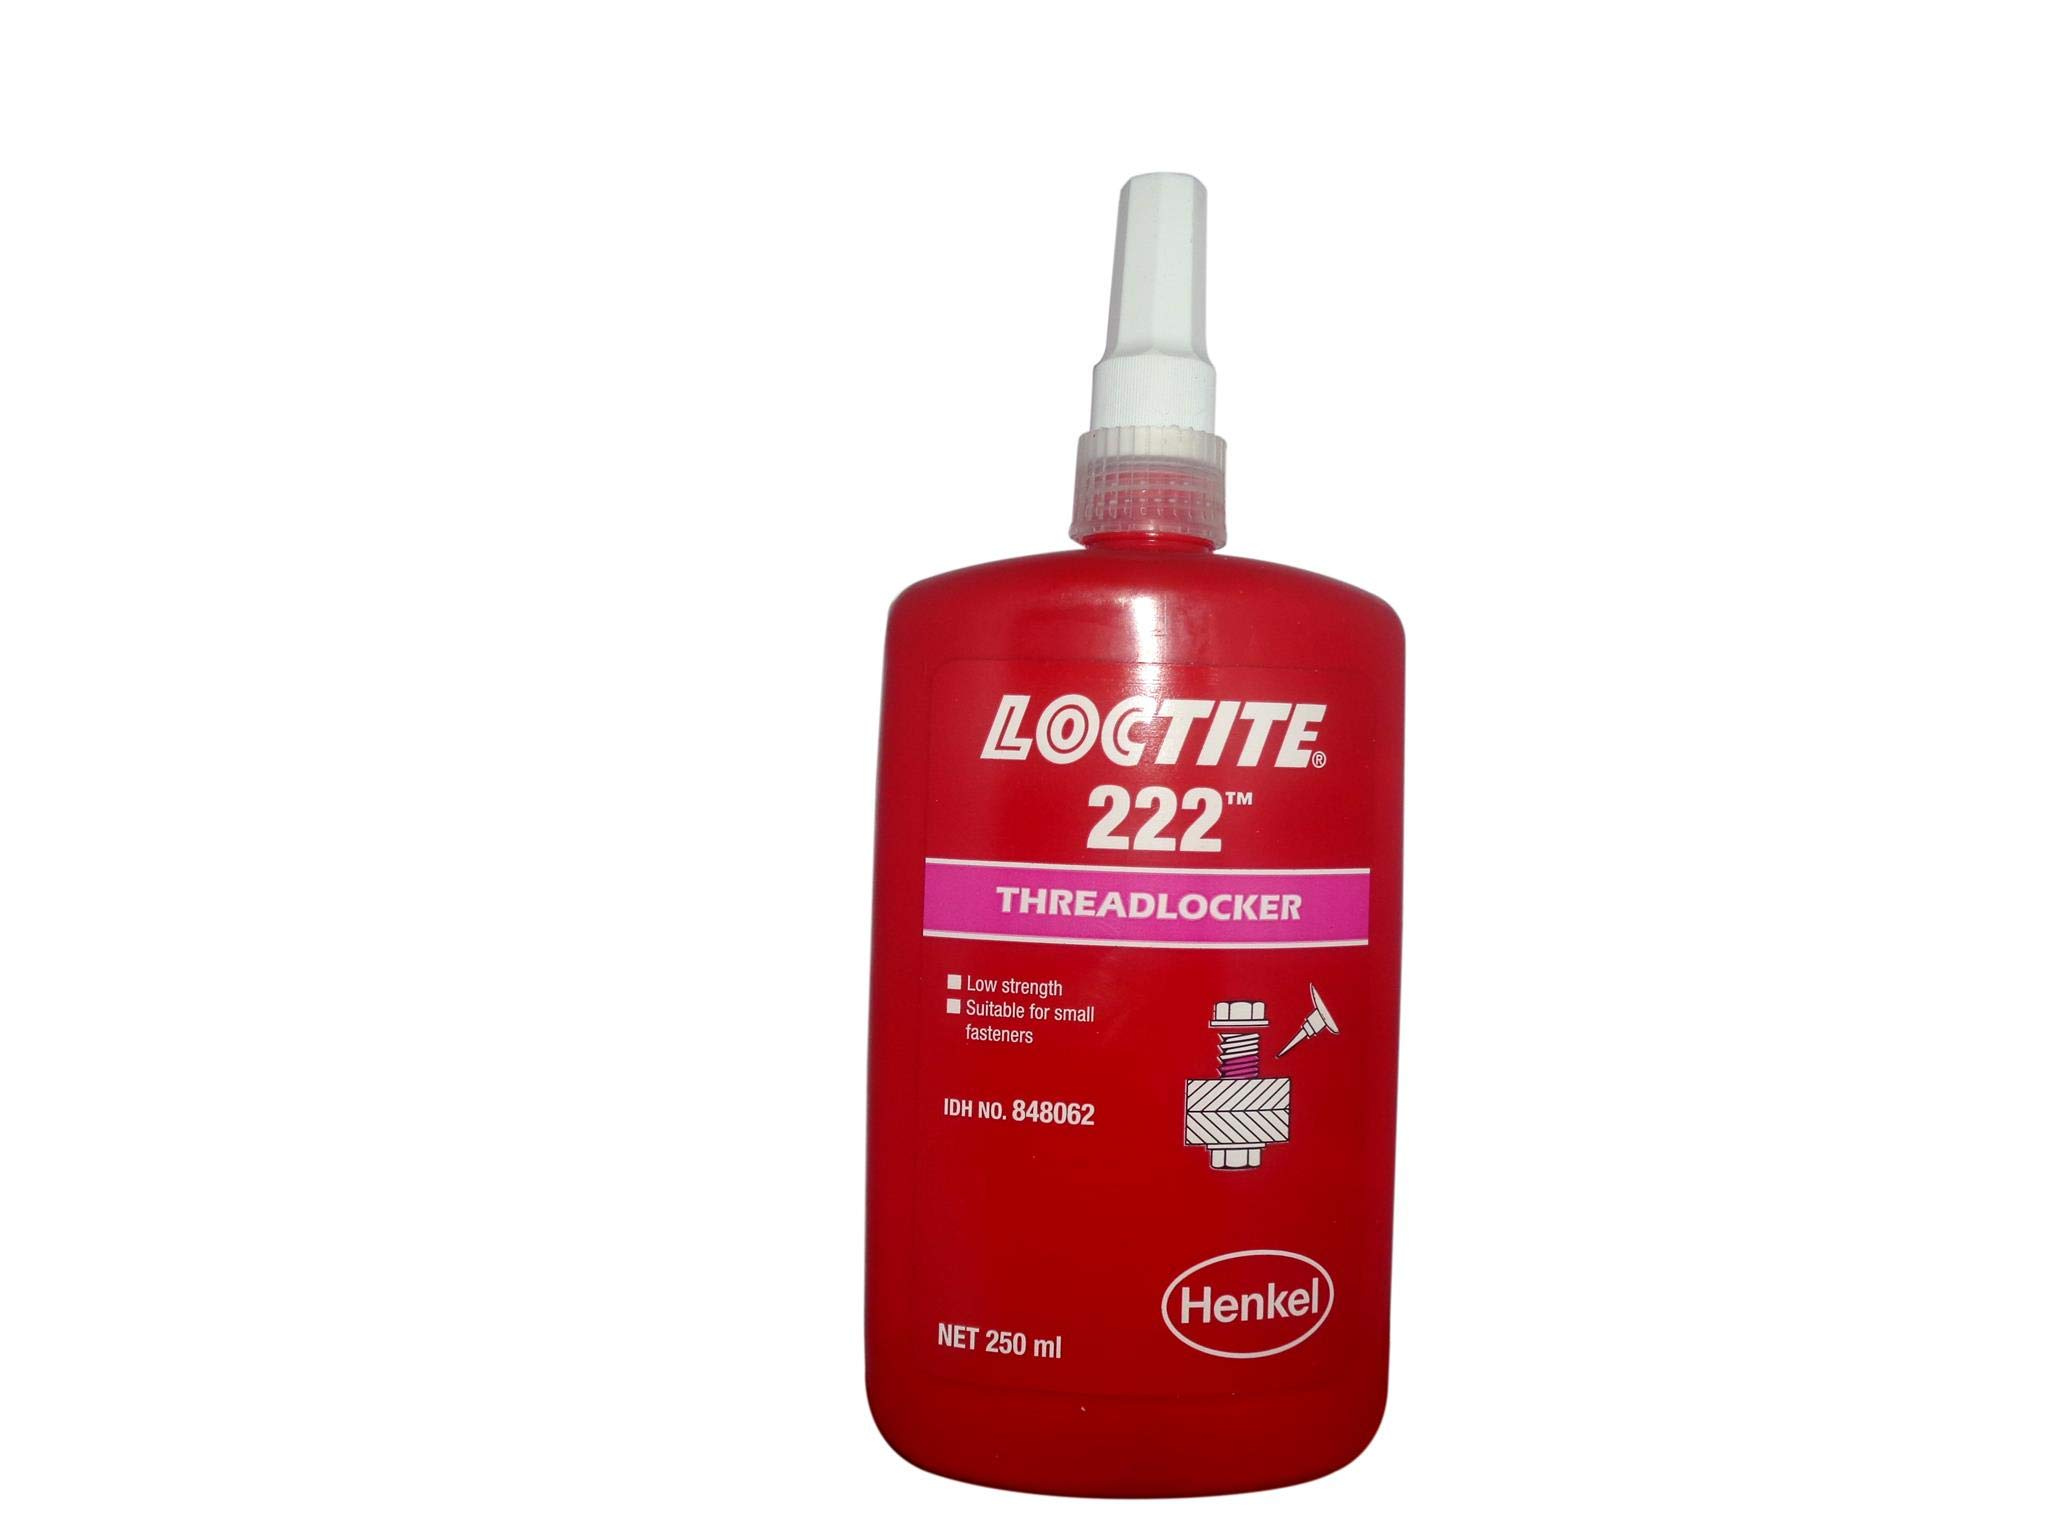 Genuine Henkel Loctite 222 X 250ml Low Strength - Threadlocker - All Metal Adhesive - Glue by Loctite (Image #1)